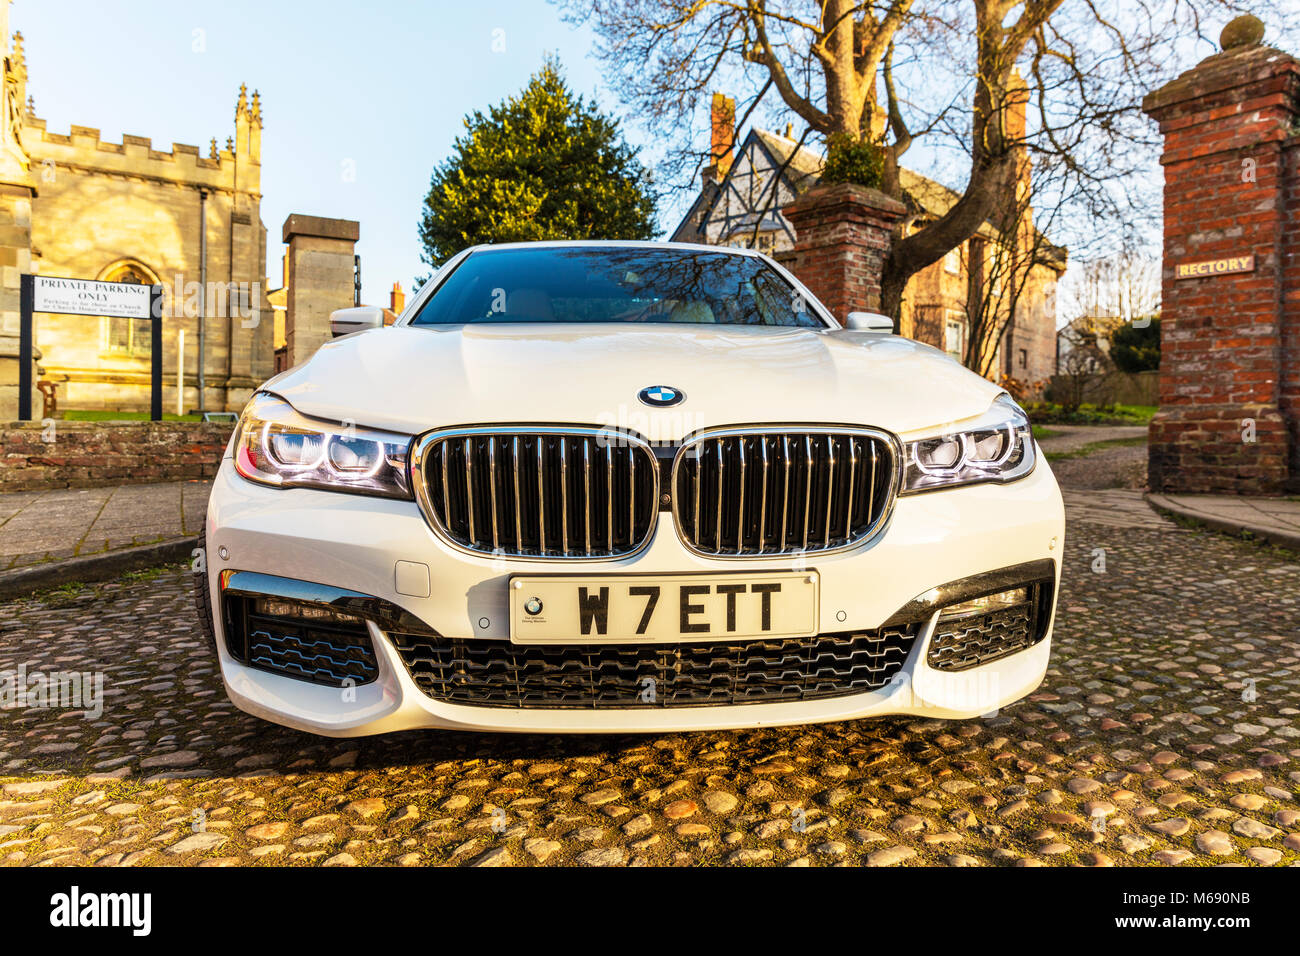 Weisses Bmw Auto Stockfotos Weisses Bmw Auto Bilder Alamy